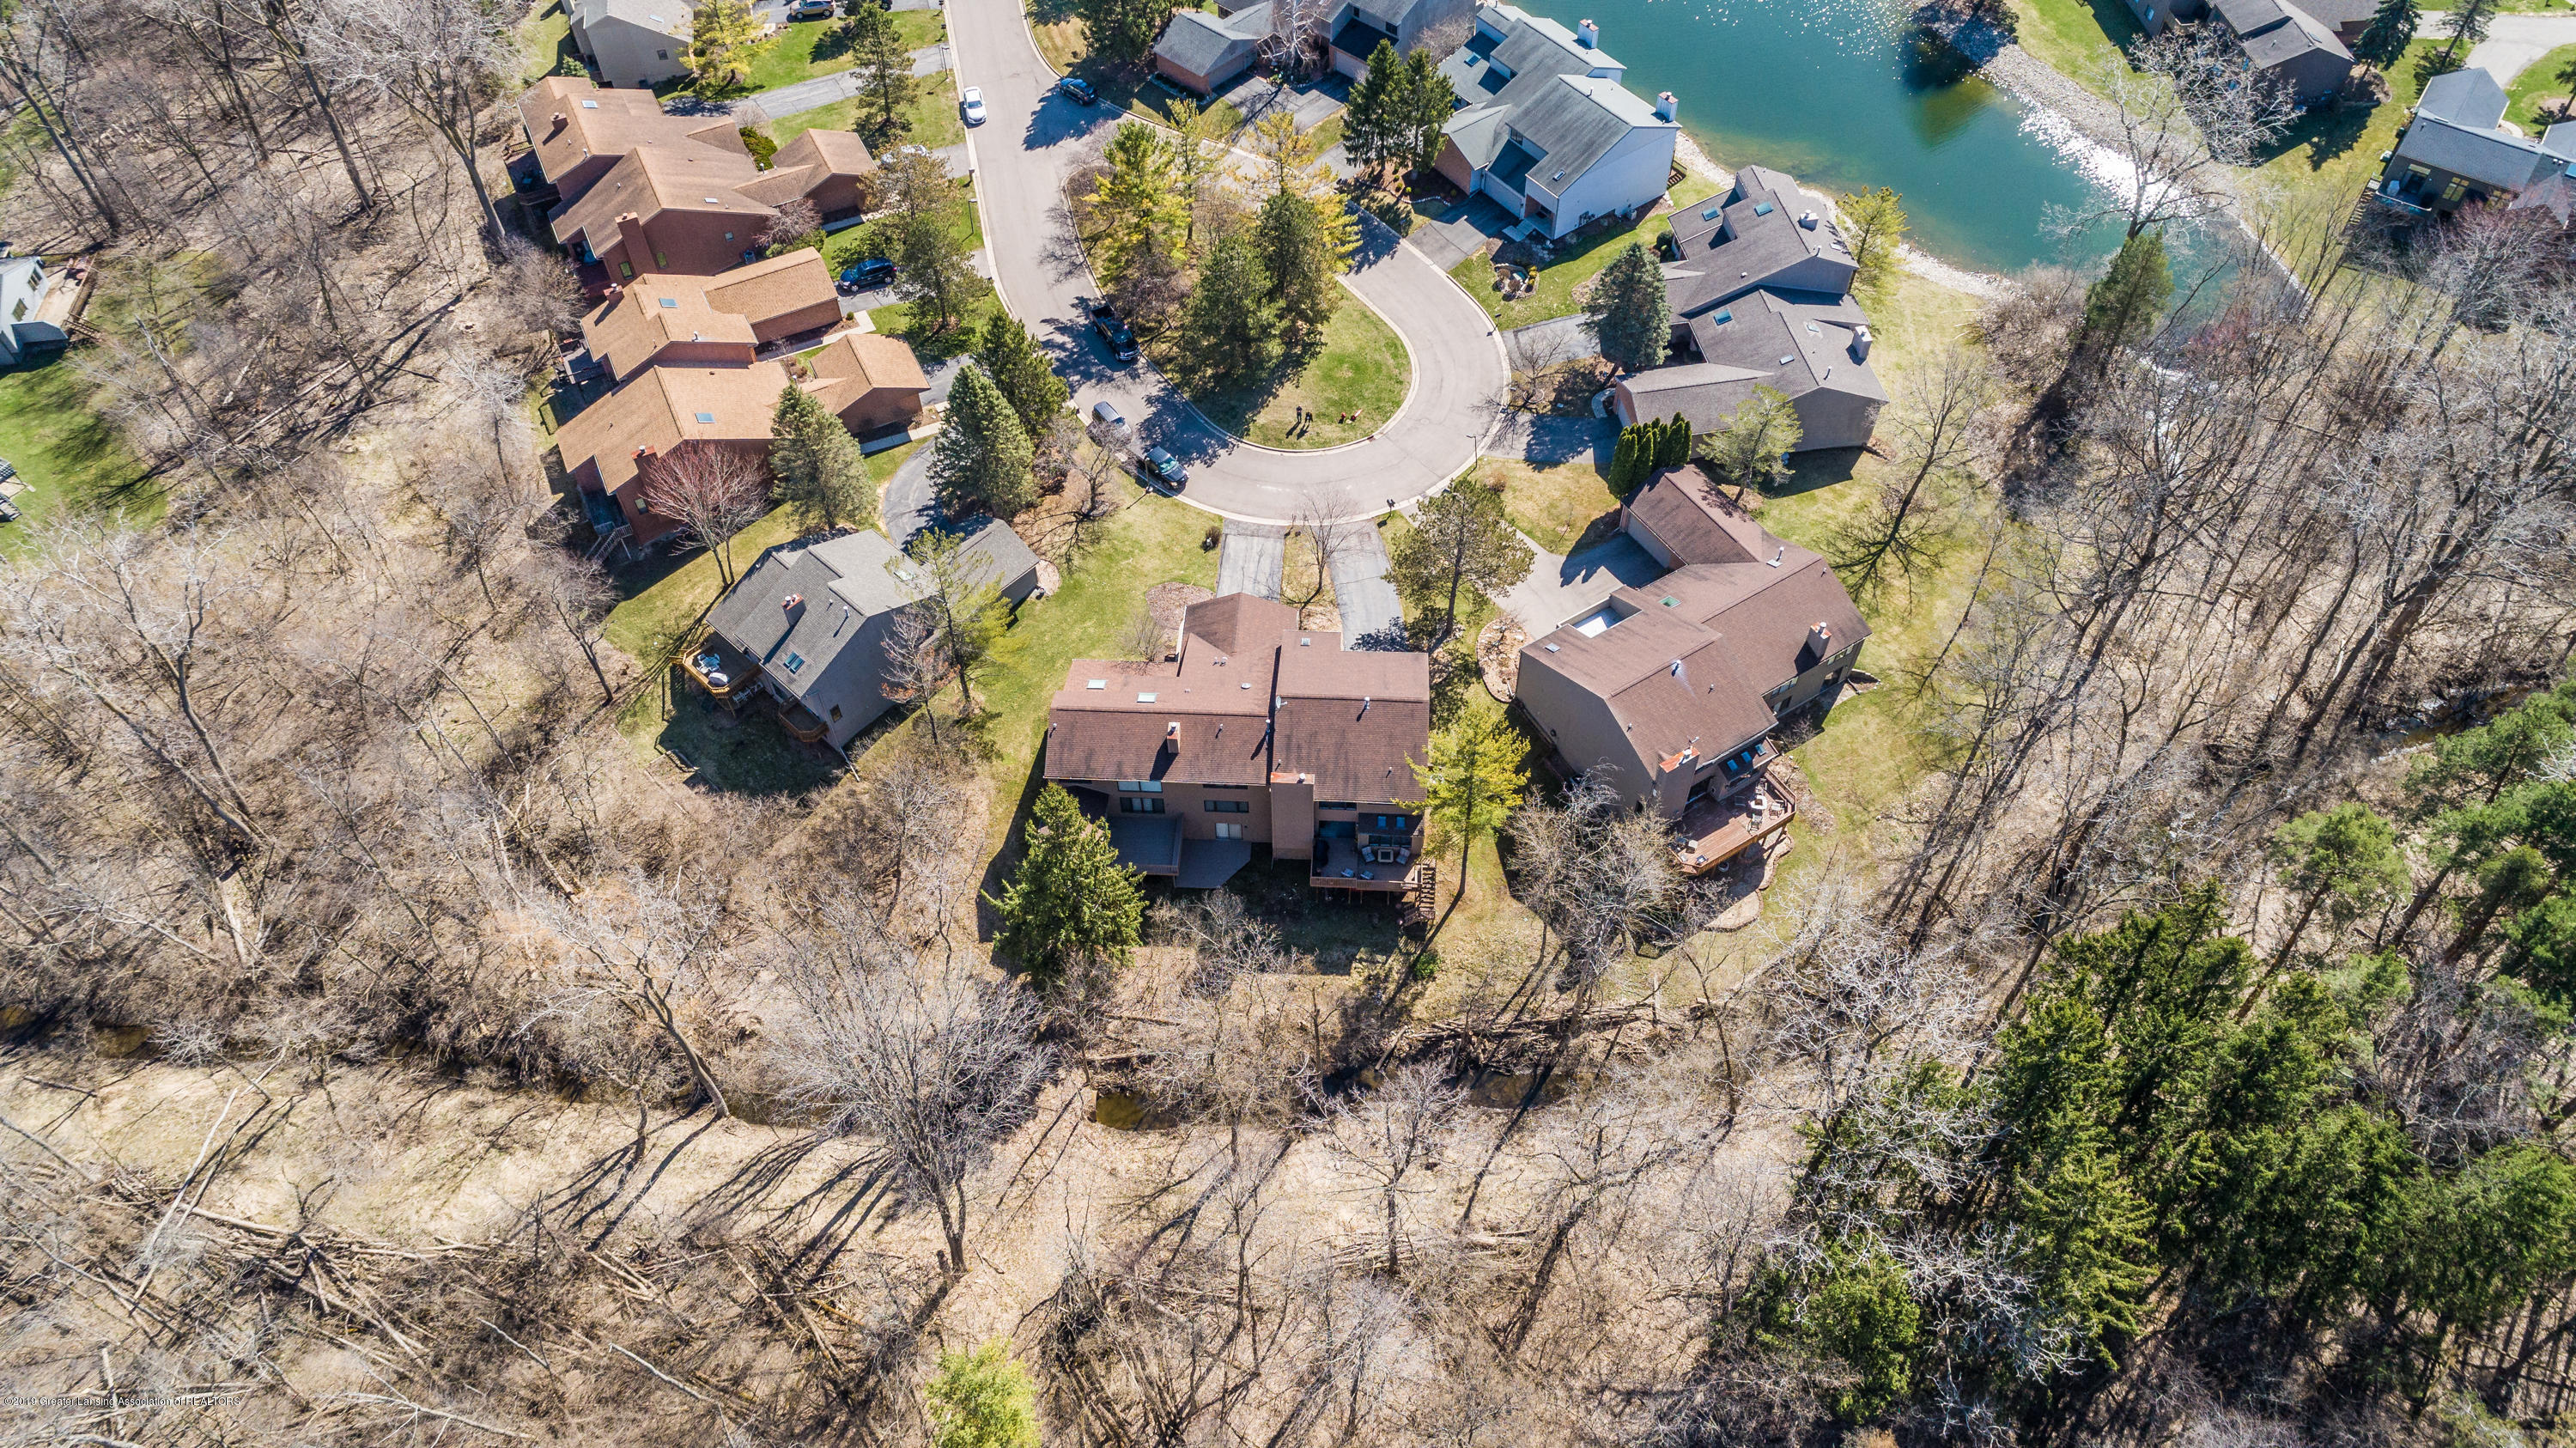 2474 Emerald Lake Dr - EMLL-0229 - 46